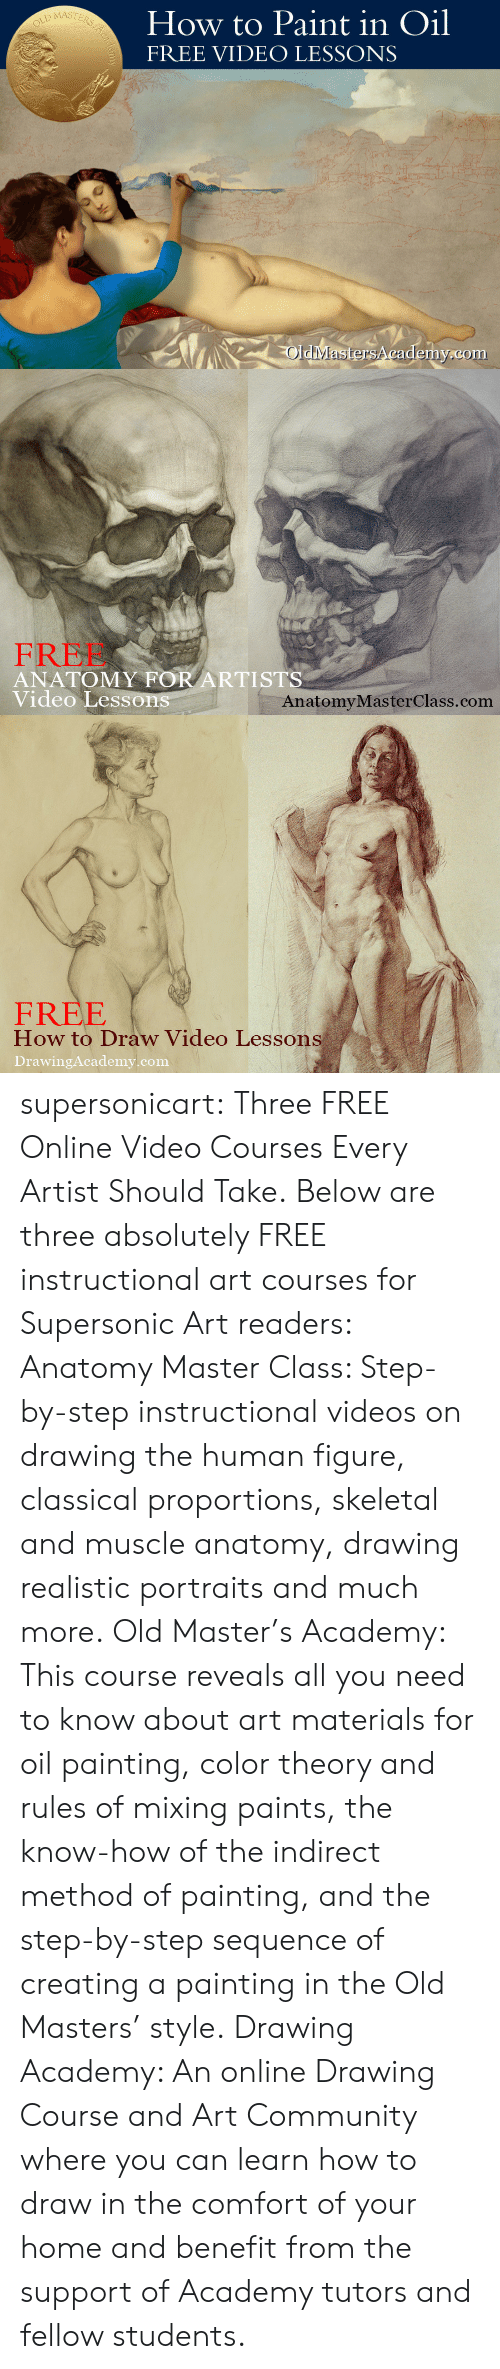 step by step: How to Paint in Oil  FREE VIDEO LESSONS  MASTE  Rs  OldiMastersA cademy.com   FREE  ANATOMY FOR ARTISTS  Video Lesson  AnatomyMasterClass.com   FREE  How to Draw Video Lessons  DrawingAcademy.com supersonicart: Three FREE Online Video Courses Every Artist Should Take. Below are three absolutely FREE instructional art courses for Supersonic Art readers:  Anatomy Master Class: Step-by-step instructional videos on drawing the human figure, classical proportions, skeletal and muscle anatomy, drawing realistic portraits and much more.  Old Master's Academy: This course reveals all you need to know about art materials for oil painting, color theory and rules of mixing paints, the know-how of the indirect method of painting, and the step-by-step sequence of creating a painting in the Old Masters' style.  Drawing Academy: An online Drawing Course and Art Community where you can learn how to draw in the comfort of your home and benefit from the support of Academy tutors and fellow students.